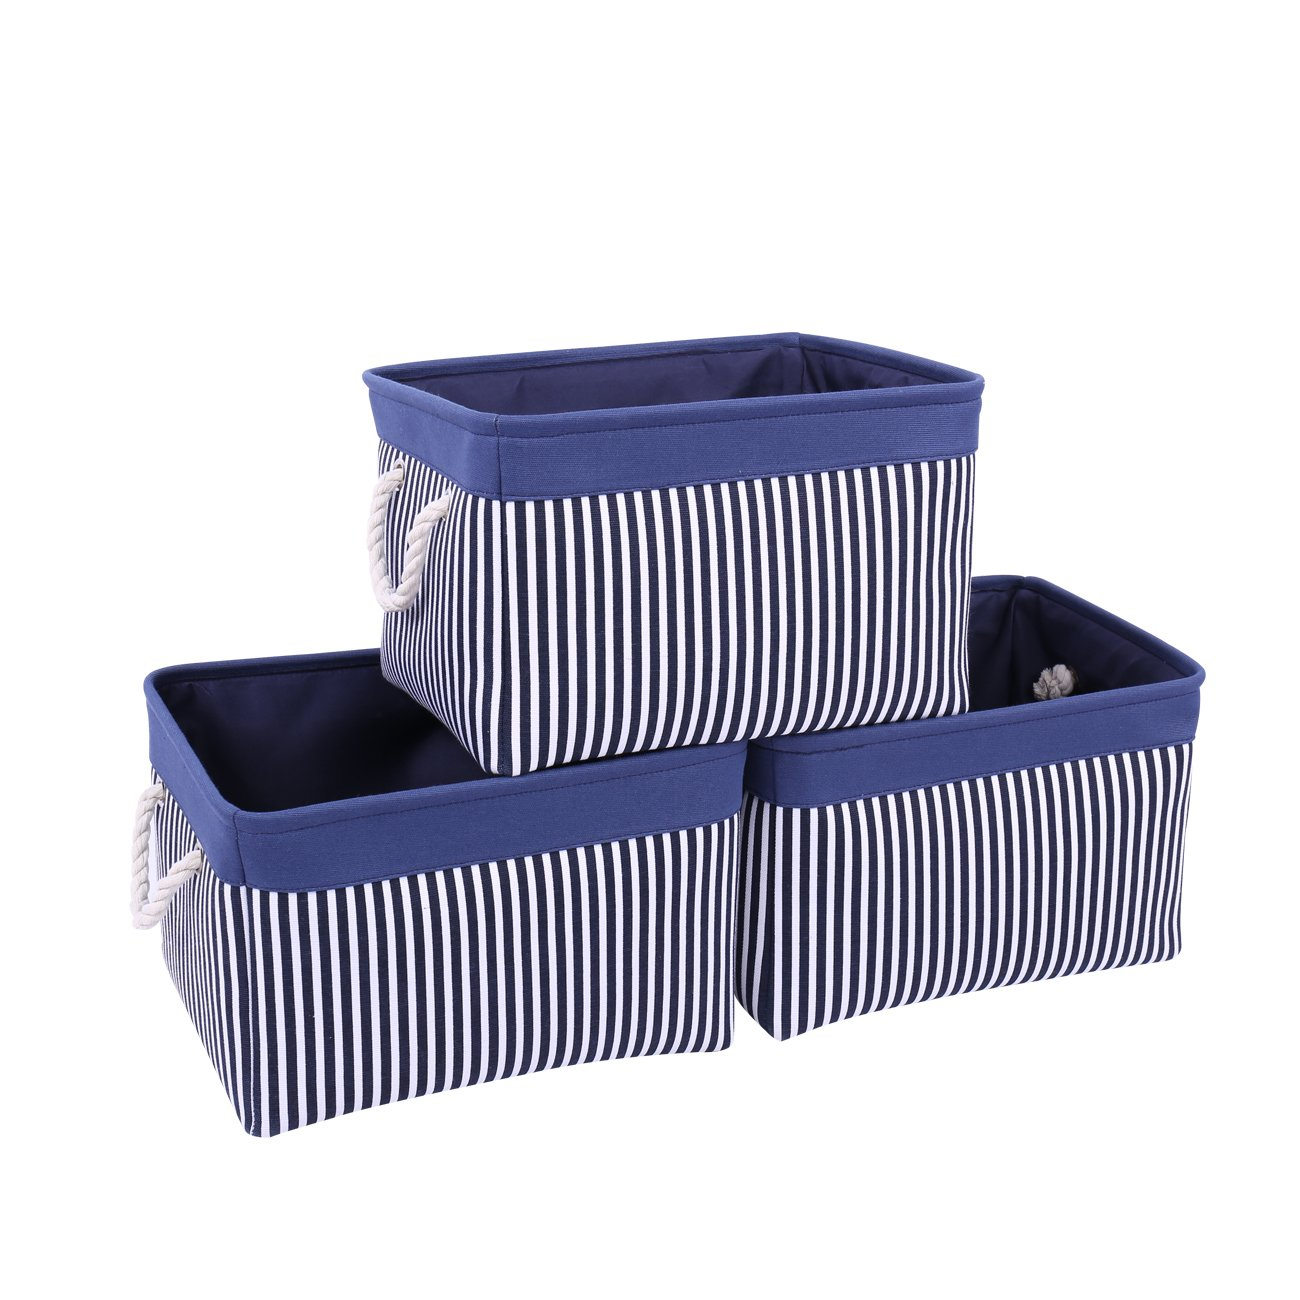 TcaFmac Large Navy Fabric Storage Basket Bin|3-Pack|Collapsible Canvas Storage Containers Organizing Baskets with Rope Handles Baskets for Gifts Empty Baby Basket (Navy Patchwork, 3-Pack) by TcaFmac